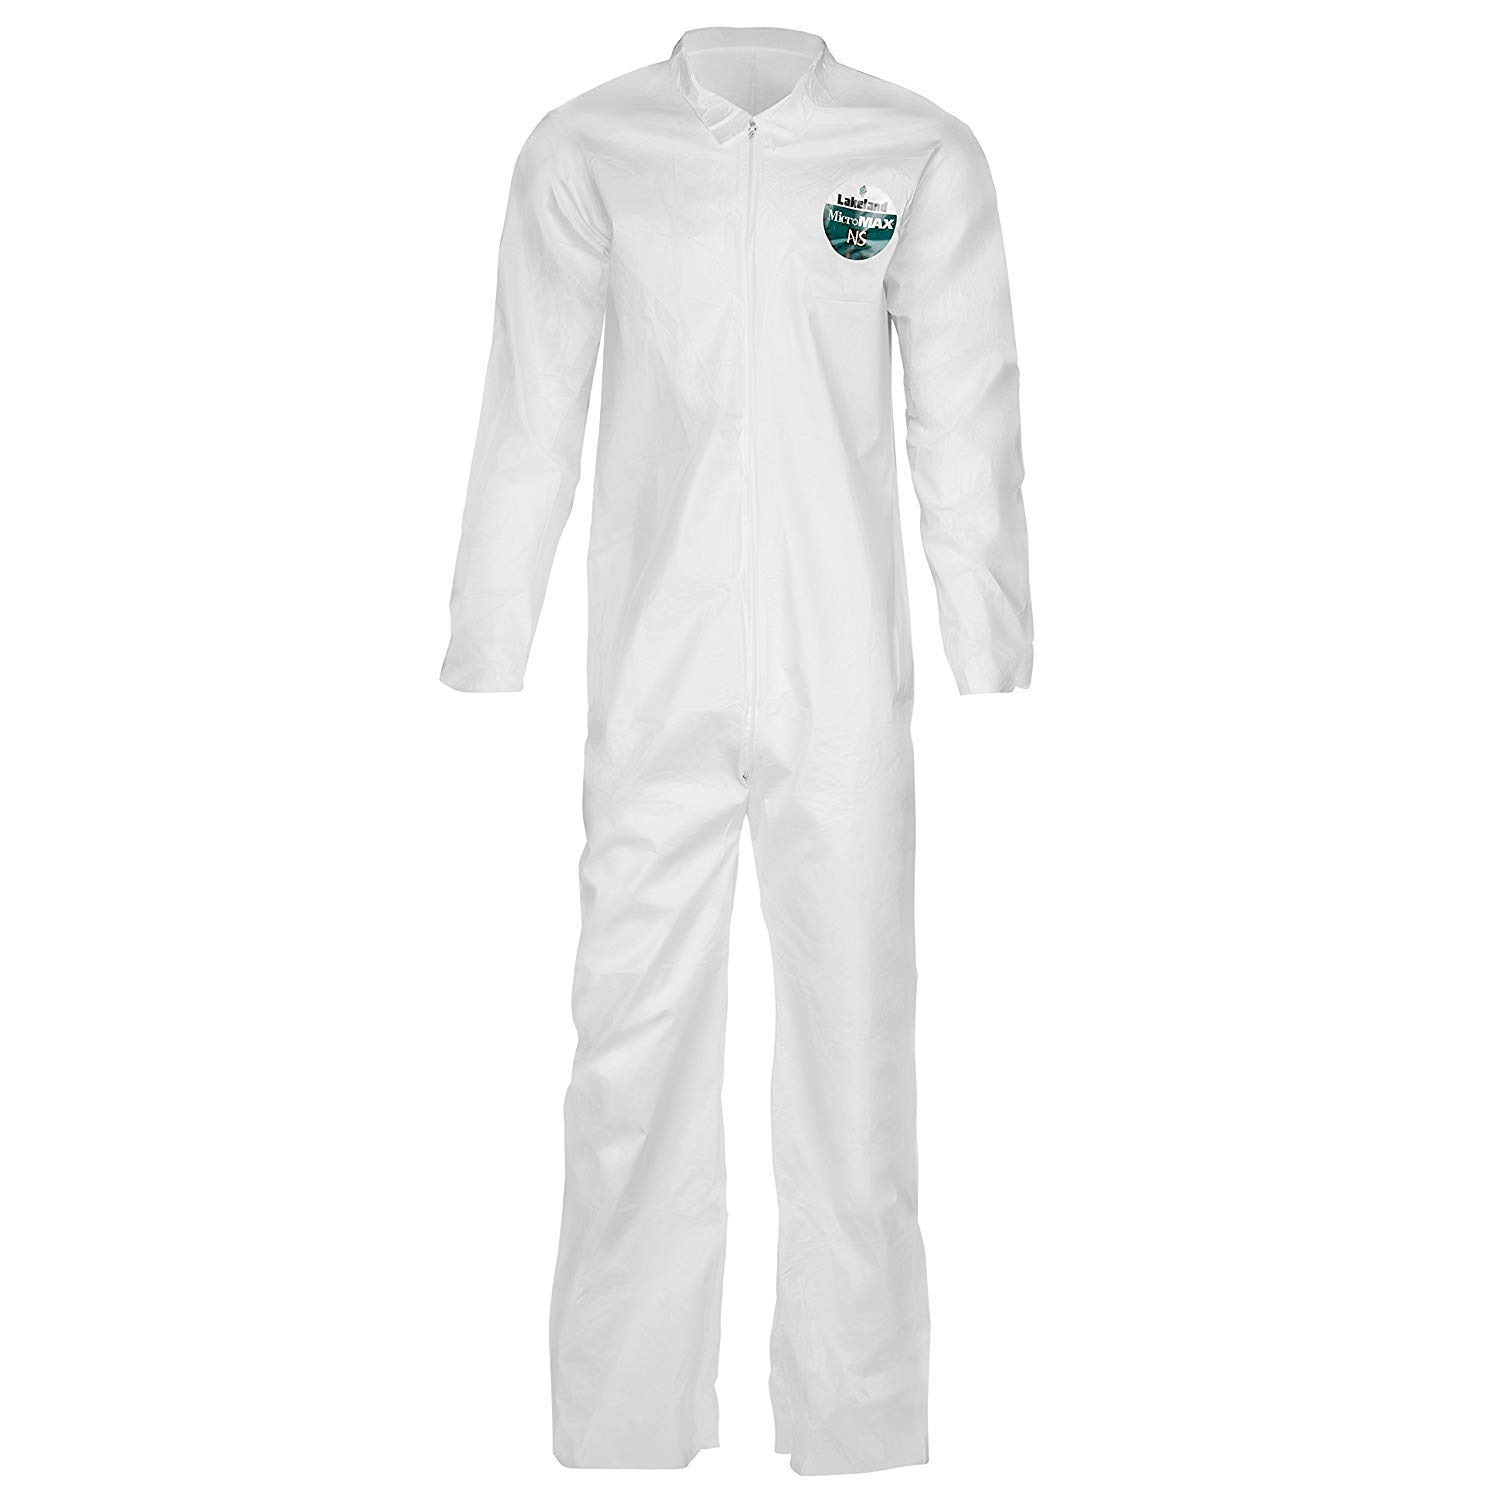 Lakeland Industries CTL412V-LG MicroMaxNS Coverall, Large, White (Pack of 1)